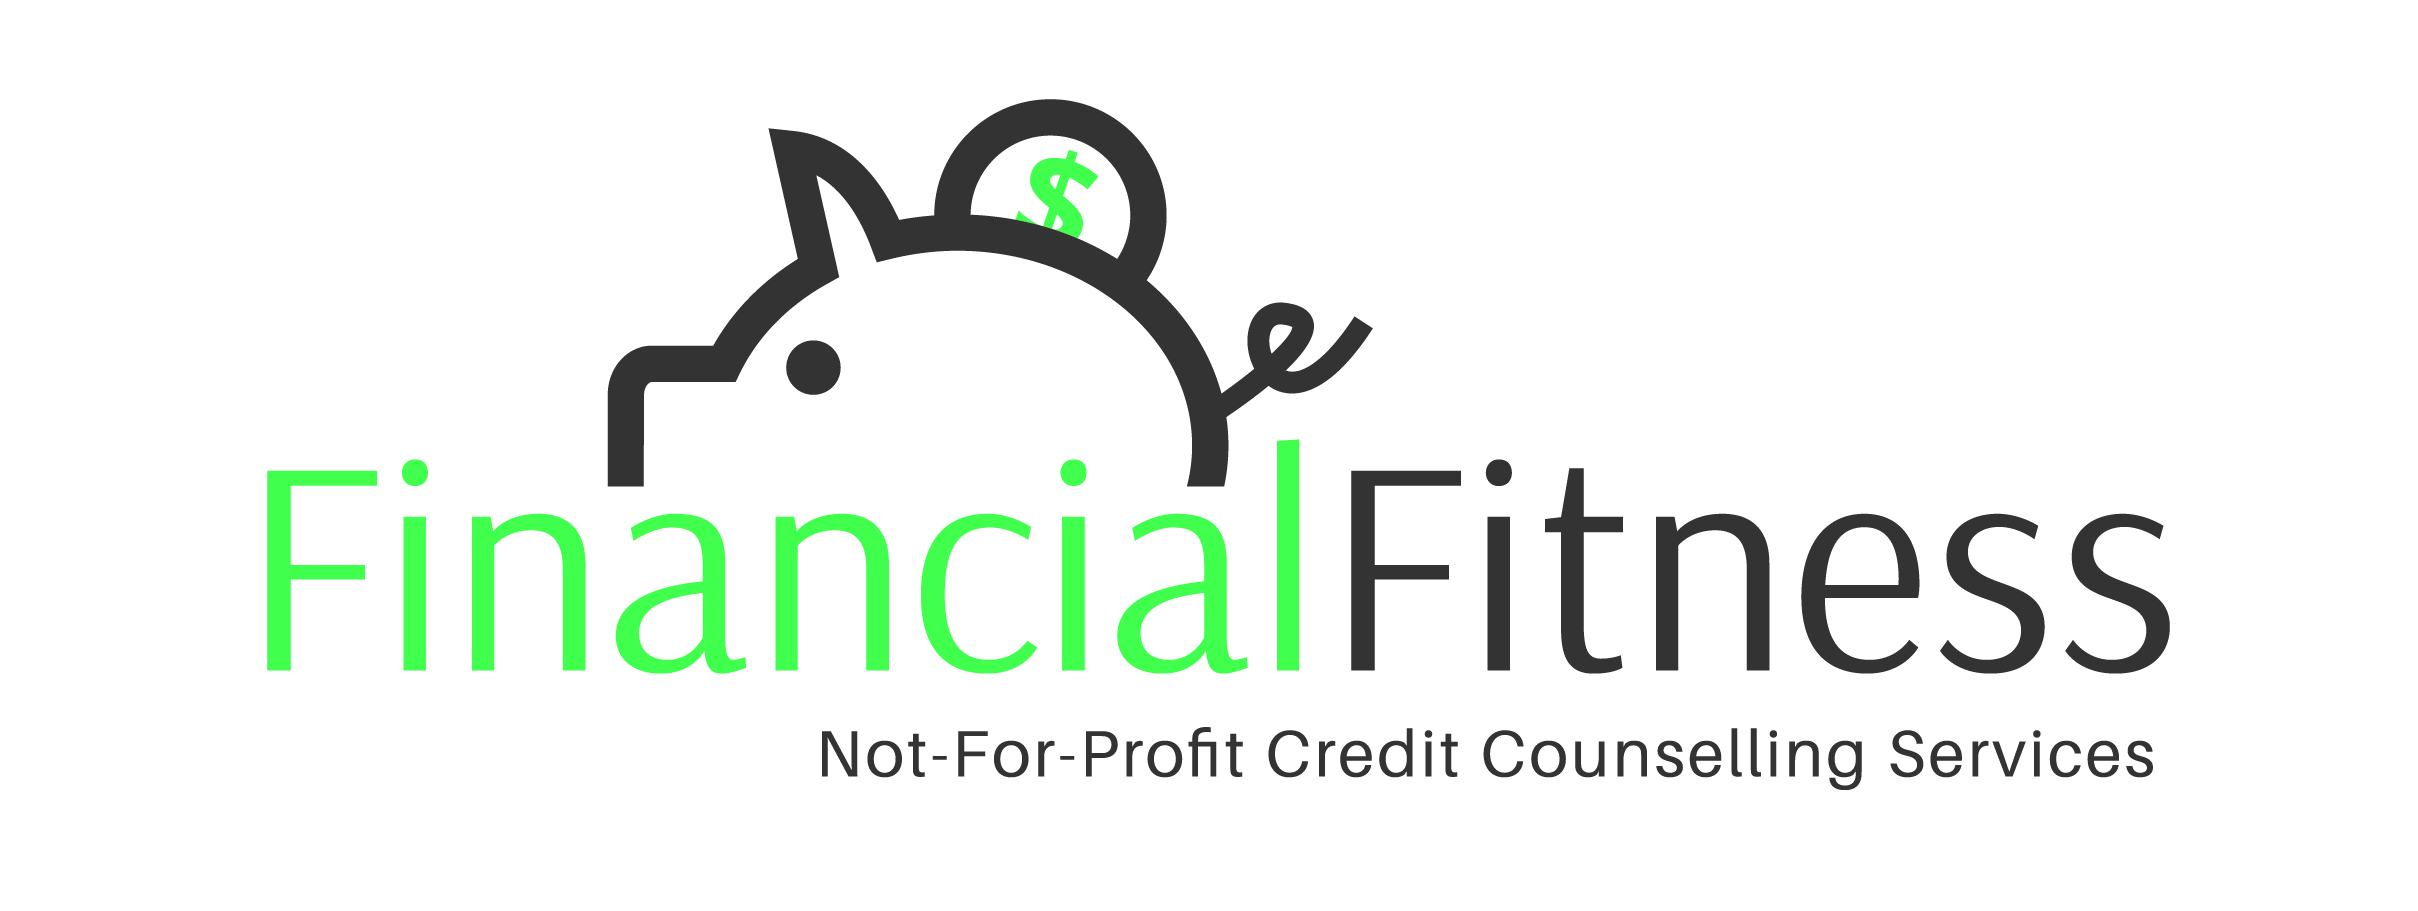 Financial Fitness Logo - Not For Profit Credit Counselling